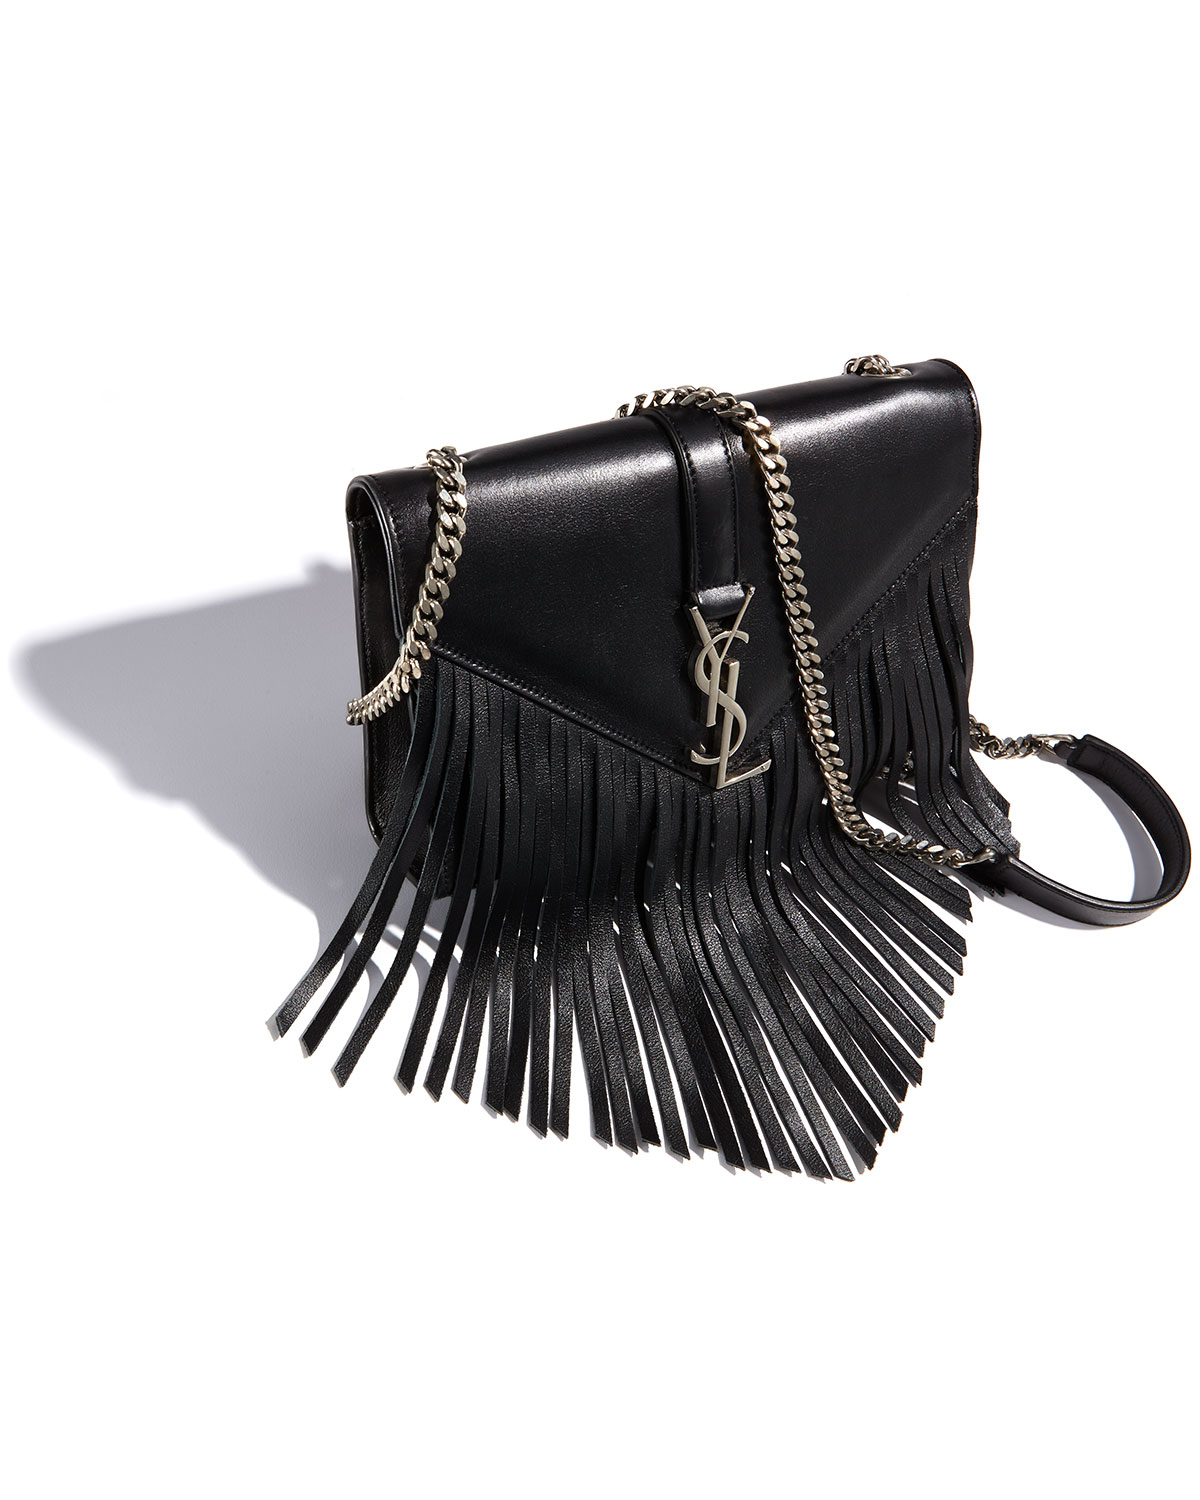 fae0b314e134 Lyst - Saint Laurent Monogram Small Fringe Shoulder Bag in Black